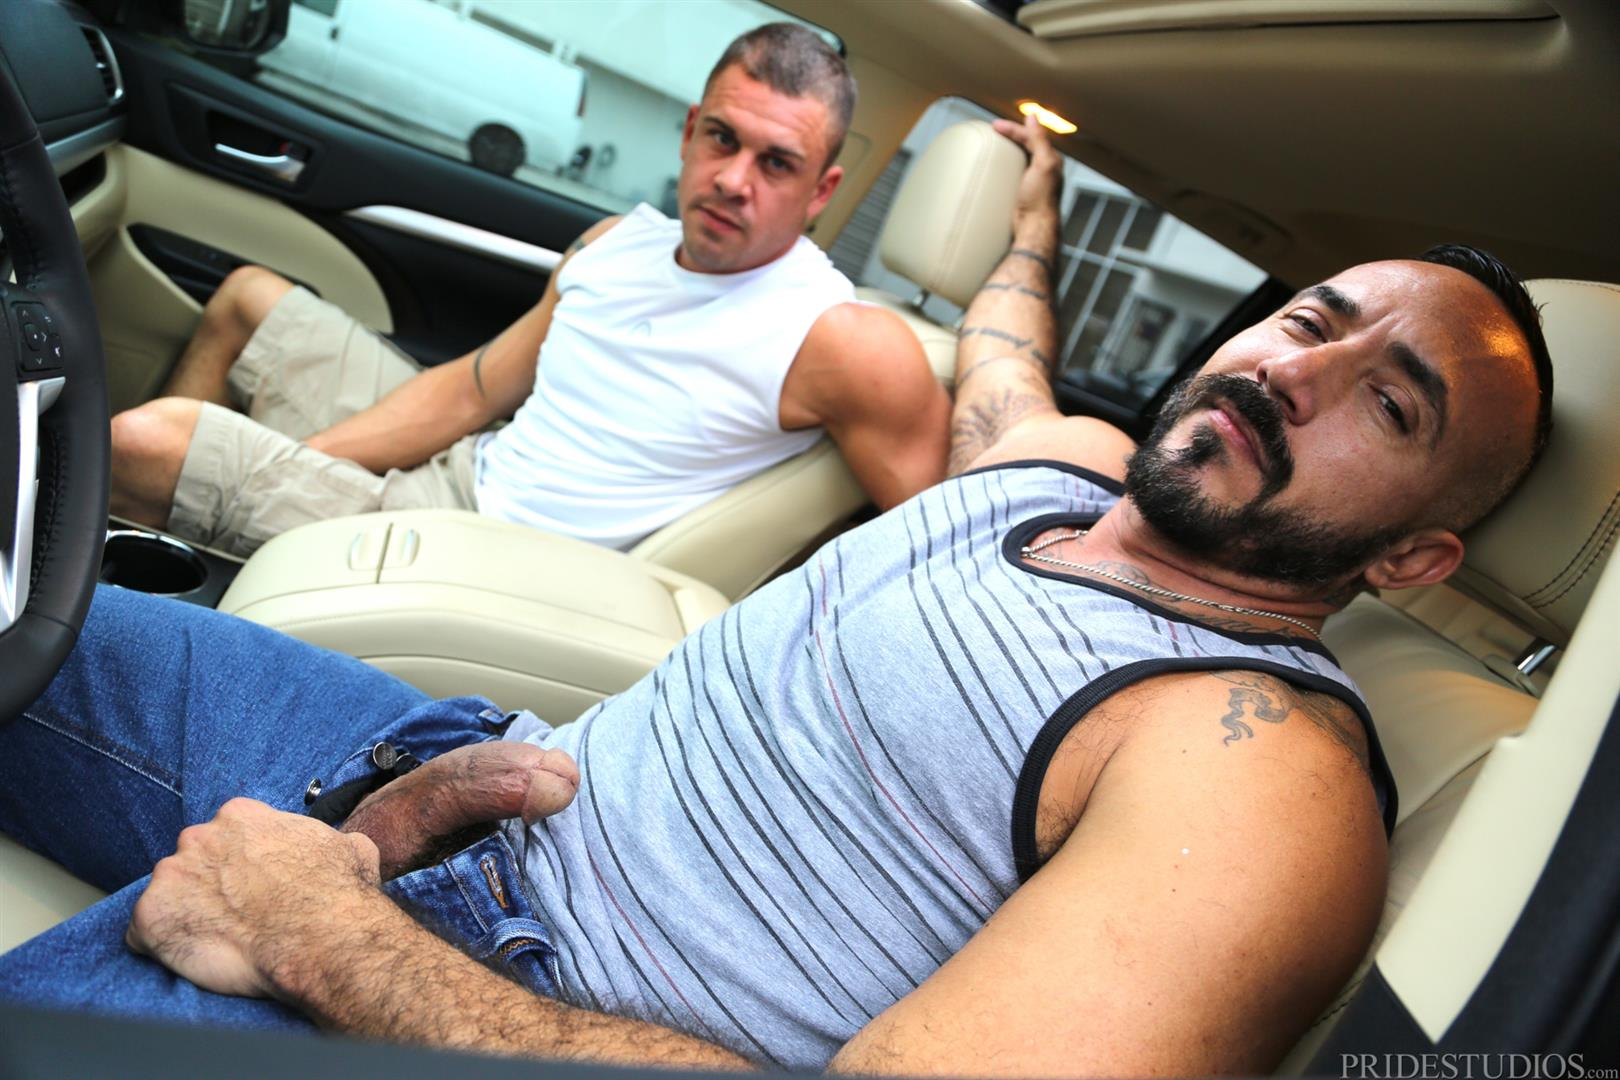 Men Over 30 Darin Silvers and Alessio Romero Hitchhiker Fucking Hairy Ass Amateur Gay Porn 02 Alessio Romero Picks Up A Hitchhiker And Gets Fucked In The Ass